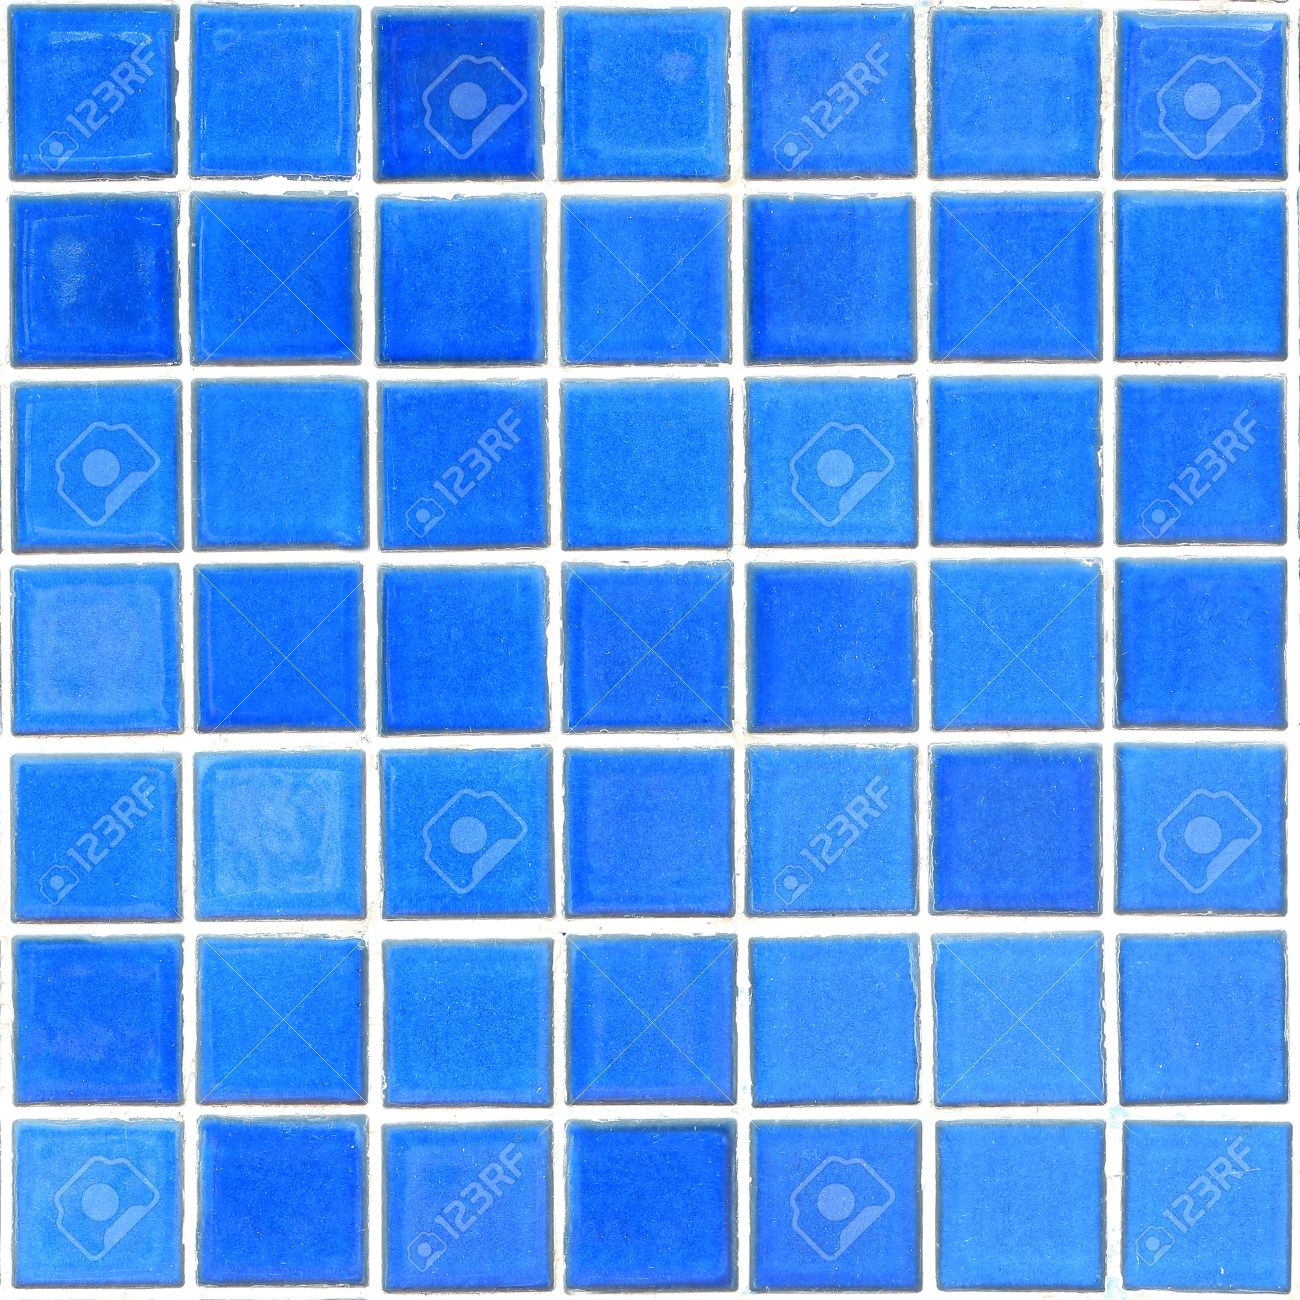 Decent Blue Mosaic Tiles Texture Filling Stock Blue Mosaic Tile Wallpaper Blue Mosaic Tiles Texture Filling Stock Photo Blue Mosaic Tiles Texture houzz-03 Blue Mosaic Tile